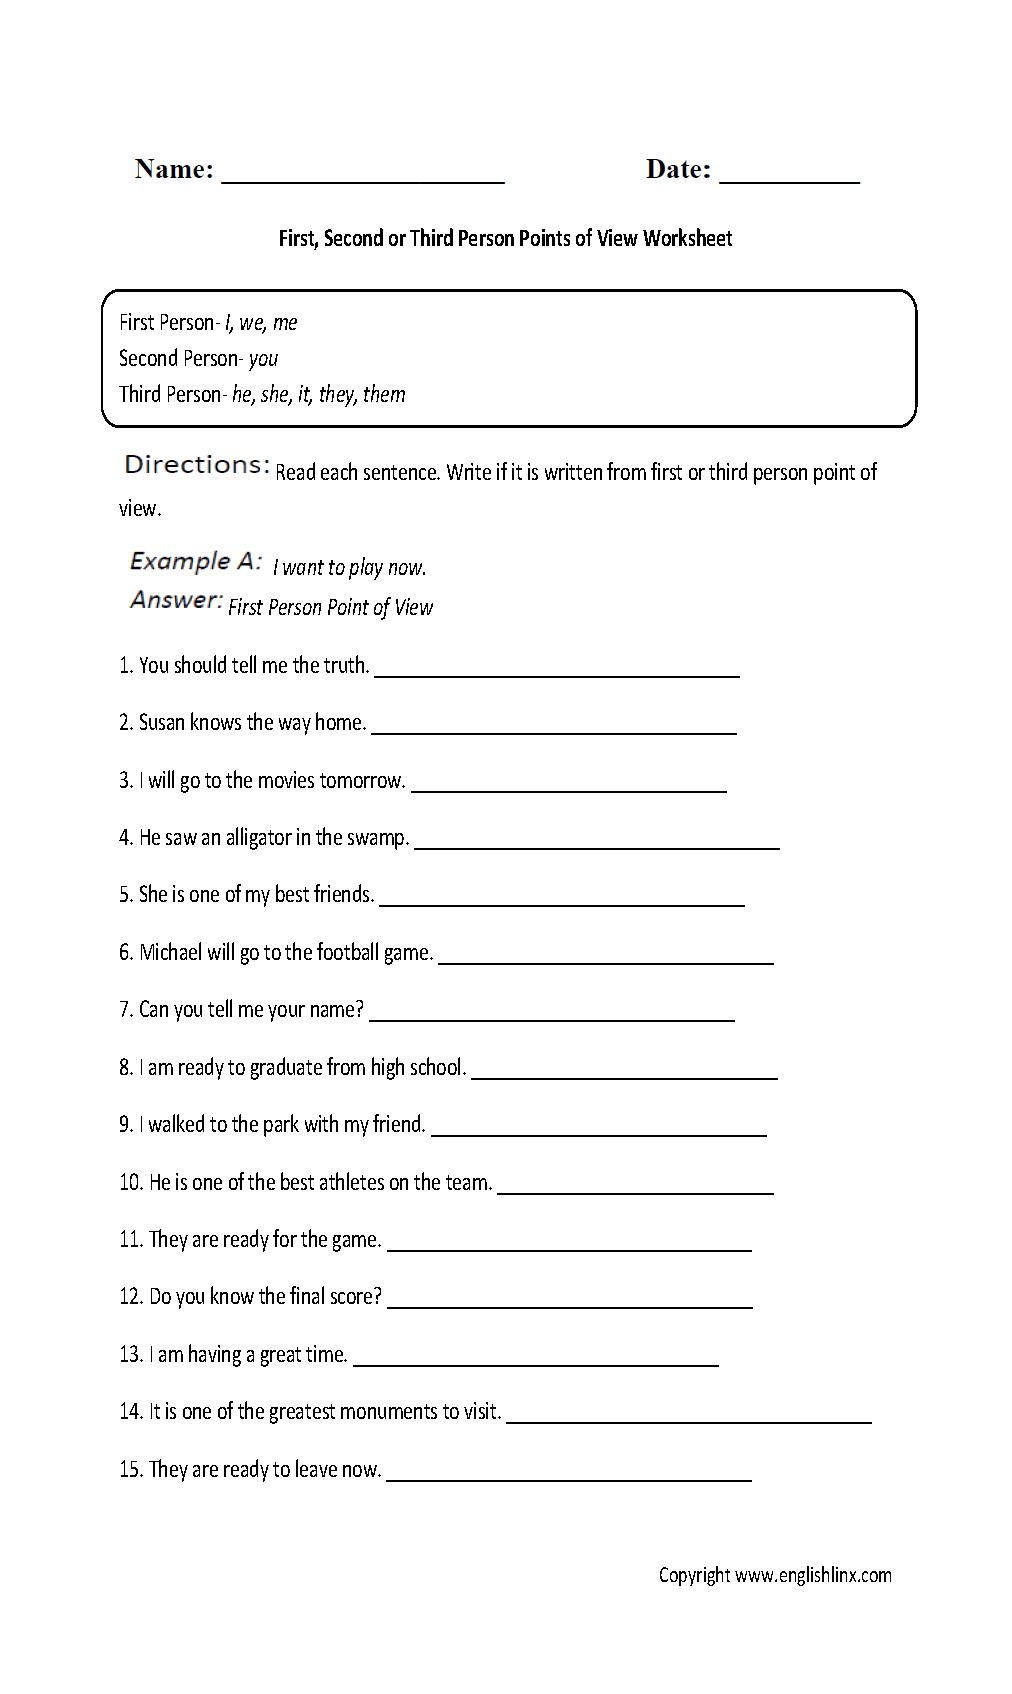 Weirdmailus  Unique Englishlinxcom  Point Of View Worksheets With Gorgeous Point Of View Worksheet With Easy On The Eye Math Worksheets For Th Graders Printable Also Adverb Of Frequency Worksheet In Addition Identify Verbs In A Sentence Worksheet And Superkids Math Worksheet Creator As Well As Worksheet Works Maths Additionally Telling Time Spanish Worksheet From Englishlinxcom With Weirdmailus  Gorgeous Englishlinxcom  Point Of View Worksheets With Easy On The Eye Point Of View Worksheet And Unique Math Worksheets For Th Graders Printable Also Adverb Of Frequency Worksheet In Addition Identify Verbs In A Sentence Worksheet From Englishlinxcom